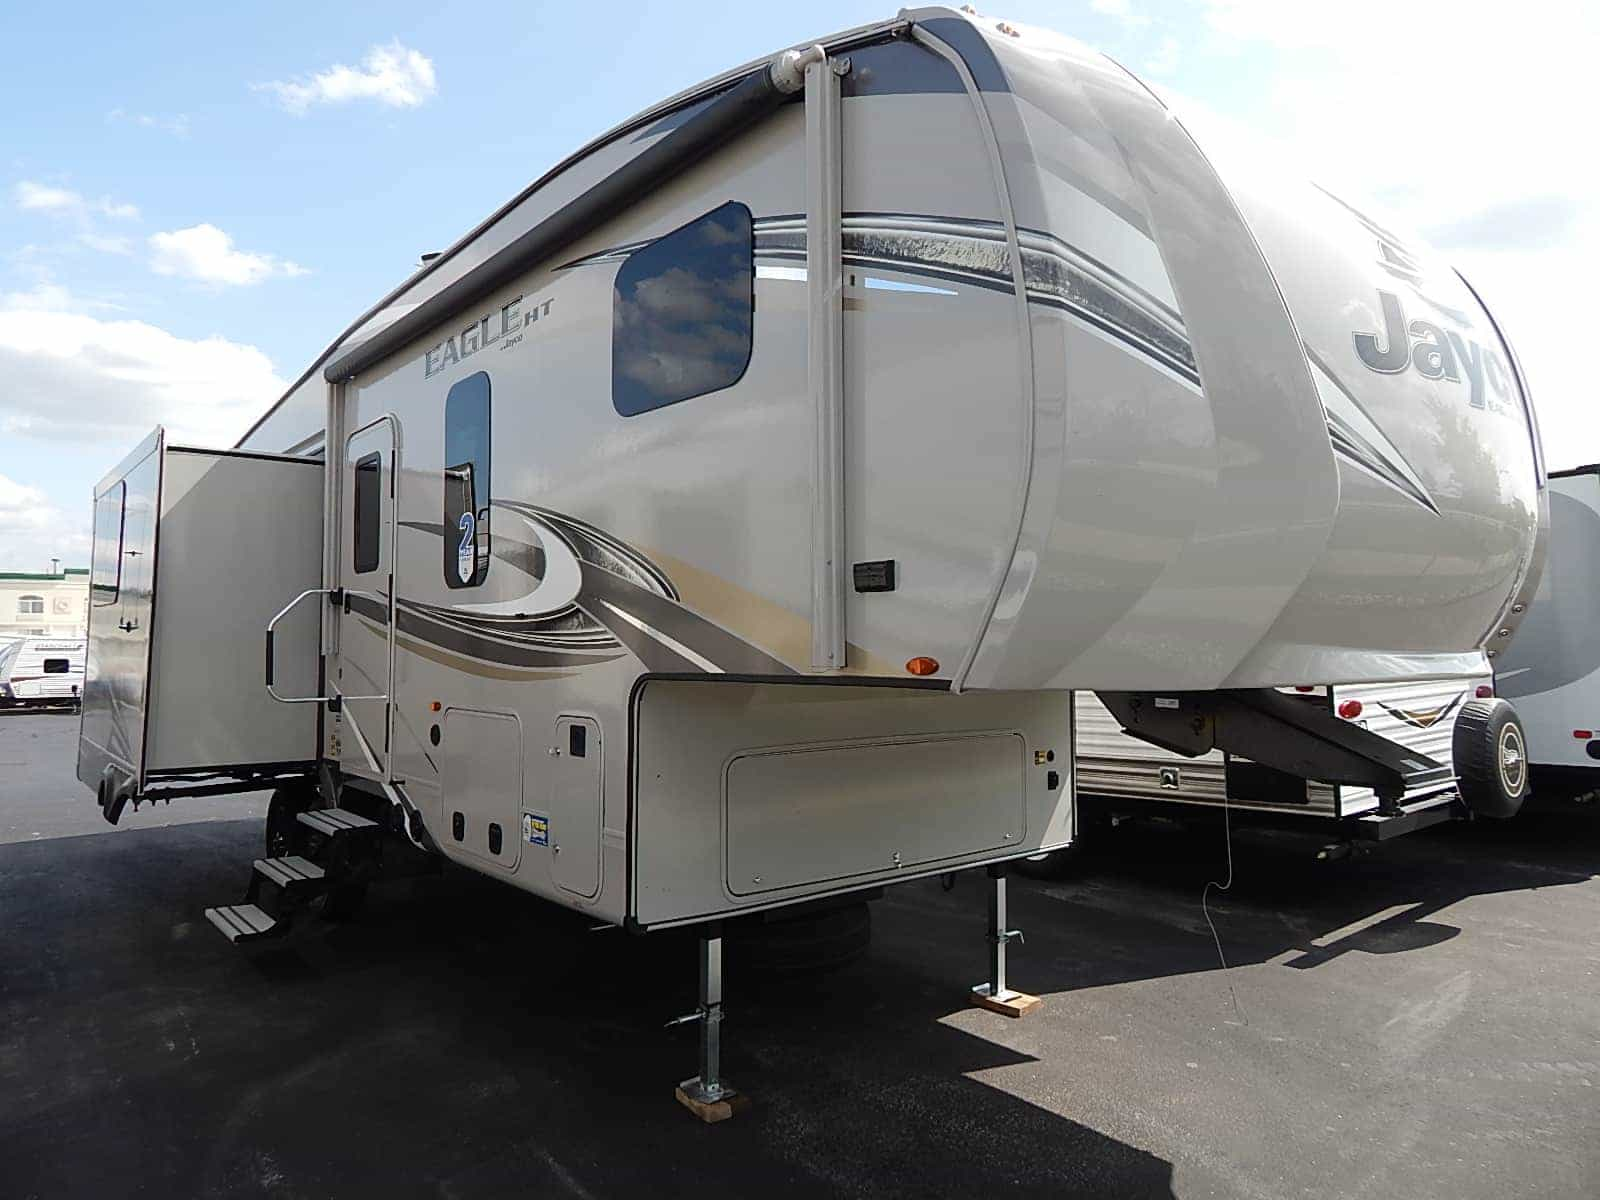 NEW 2018 Jayco EAGLE HT 27.5RLTS - Rick's RV Center